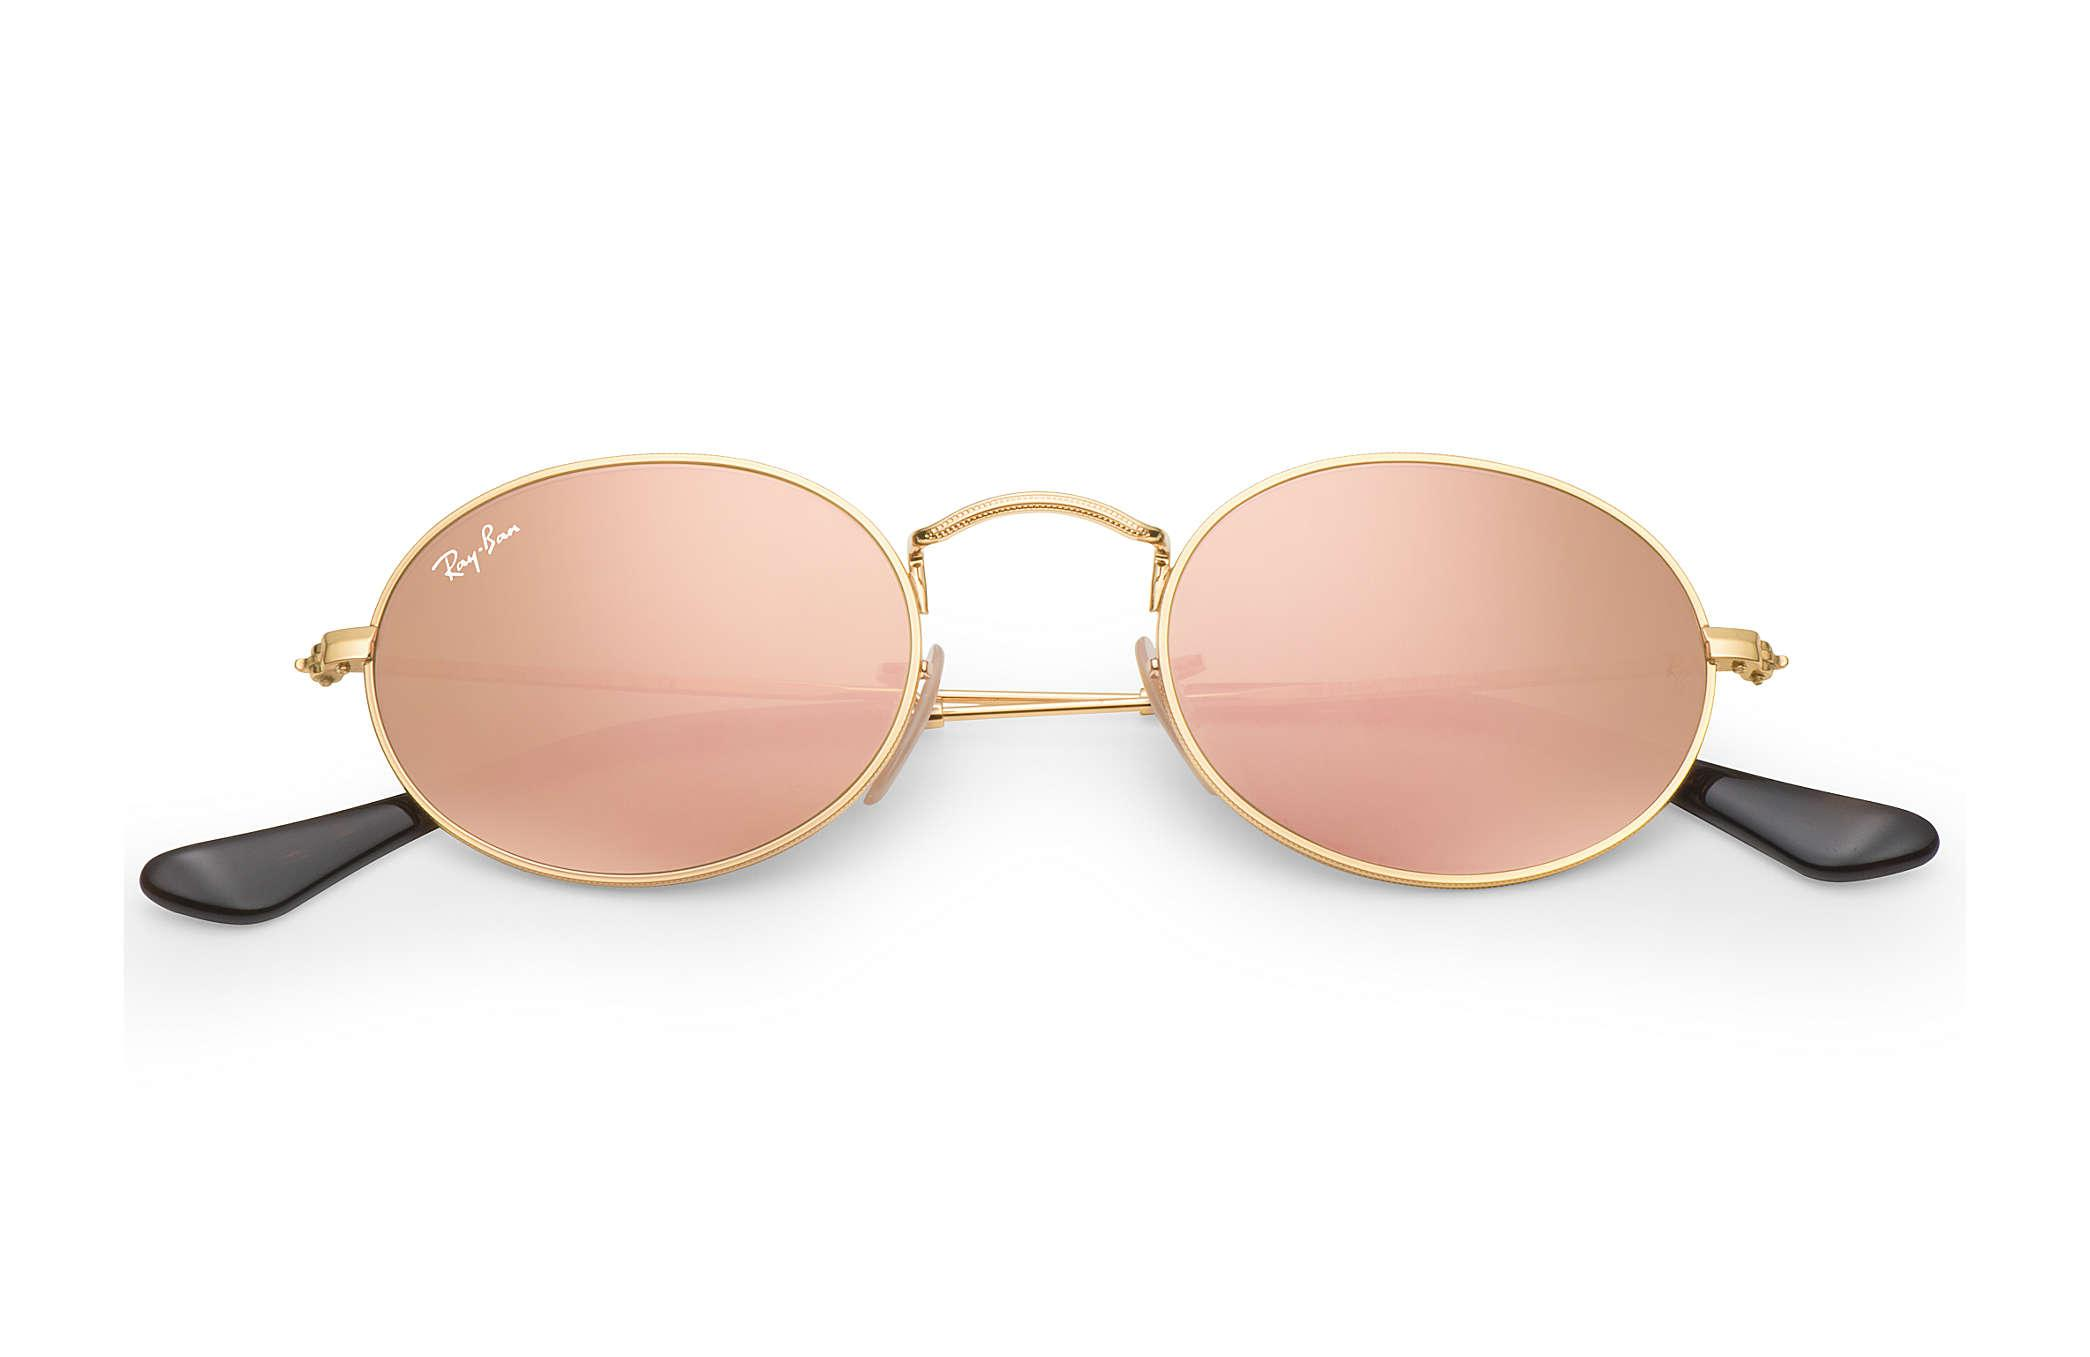 668331a982a Ray-Ban - Multicolor Oval Flat Lenses - Lyst. View fullscreen